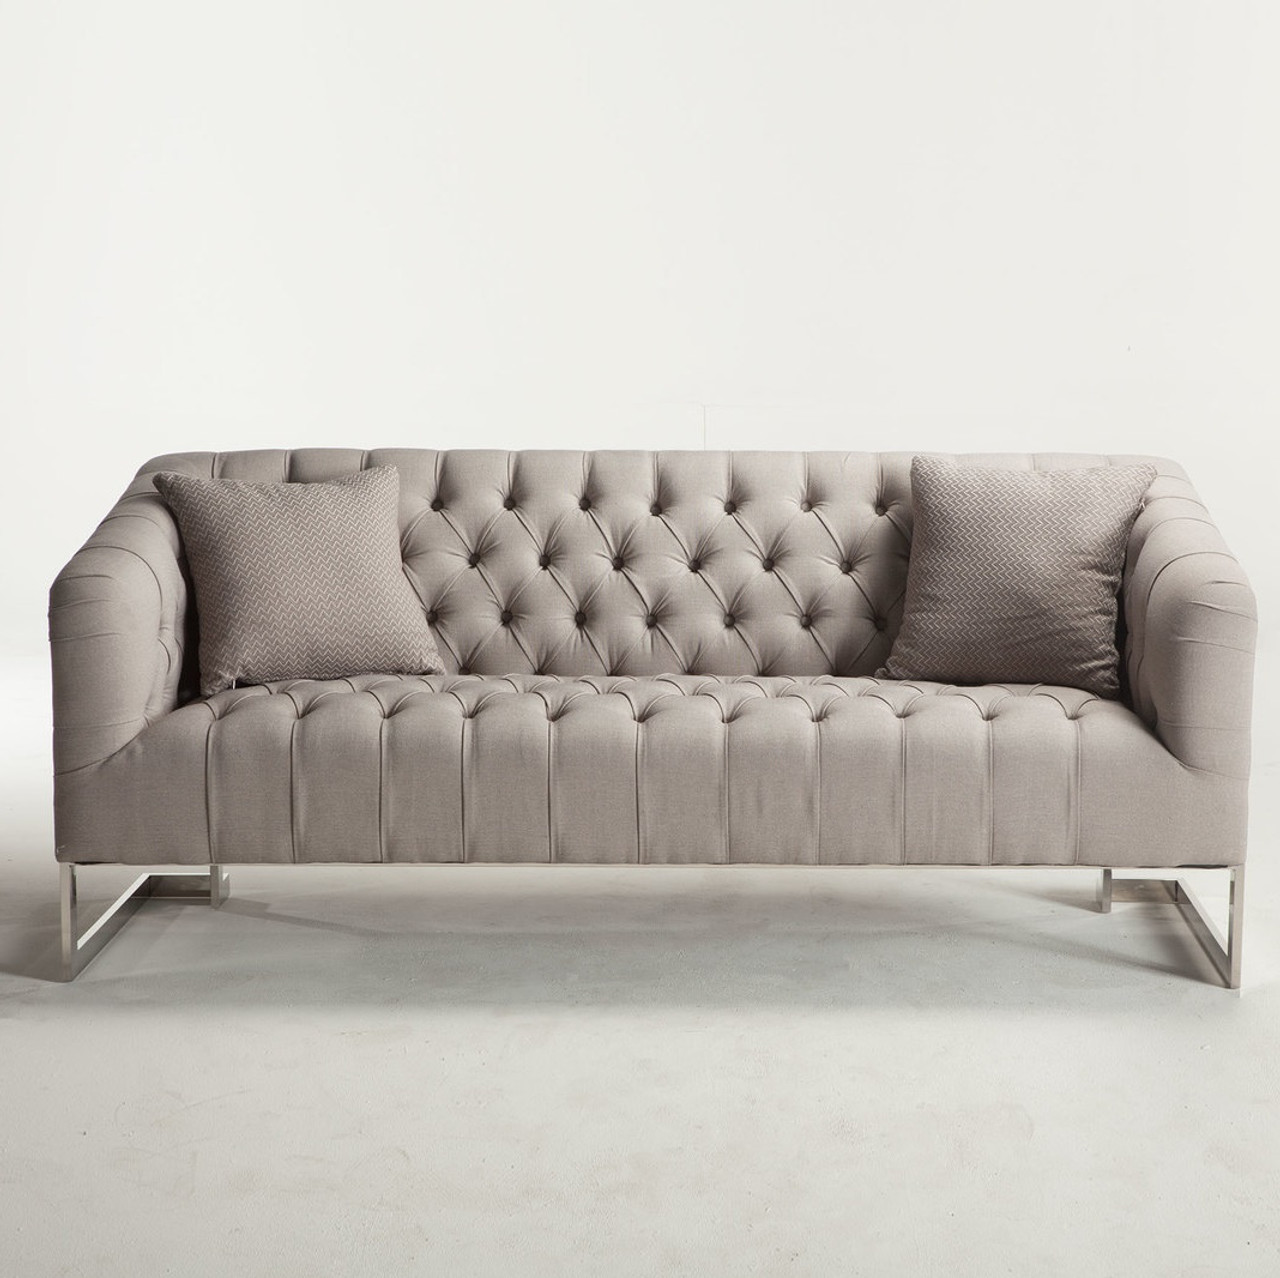 Charmant Austin Modern Tufted Sofa   Grey